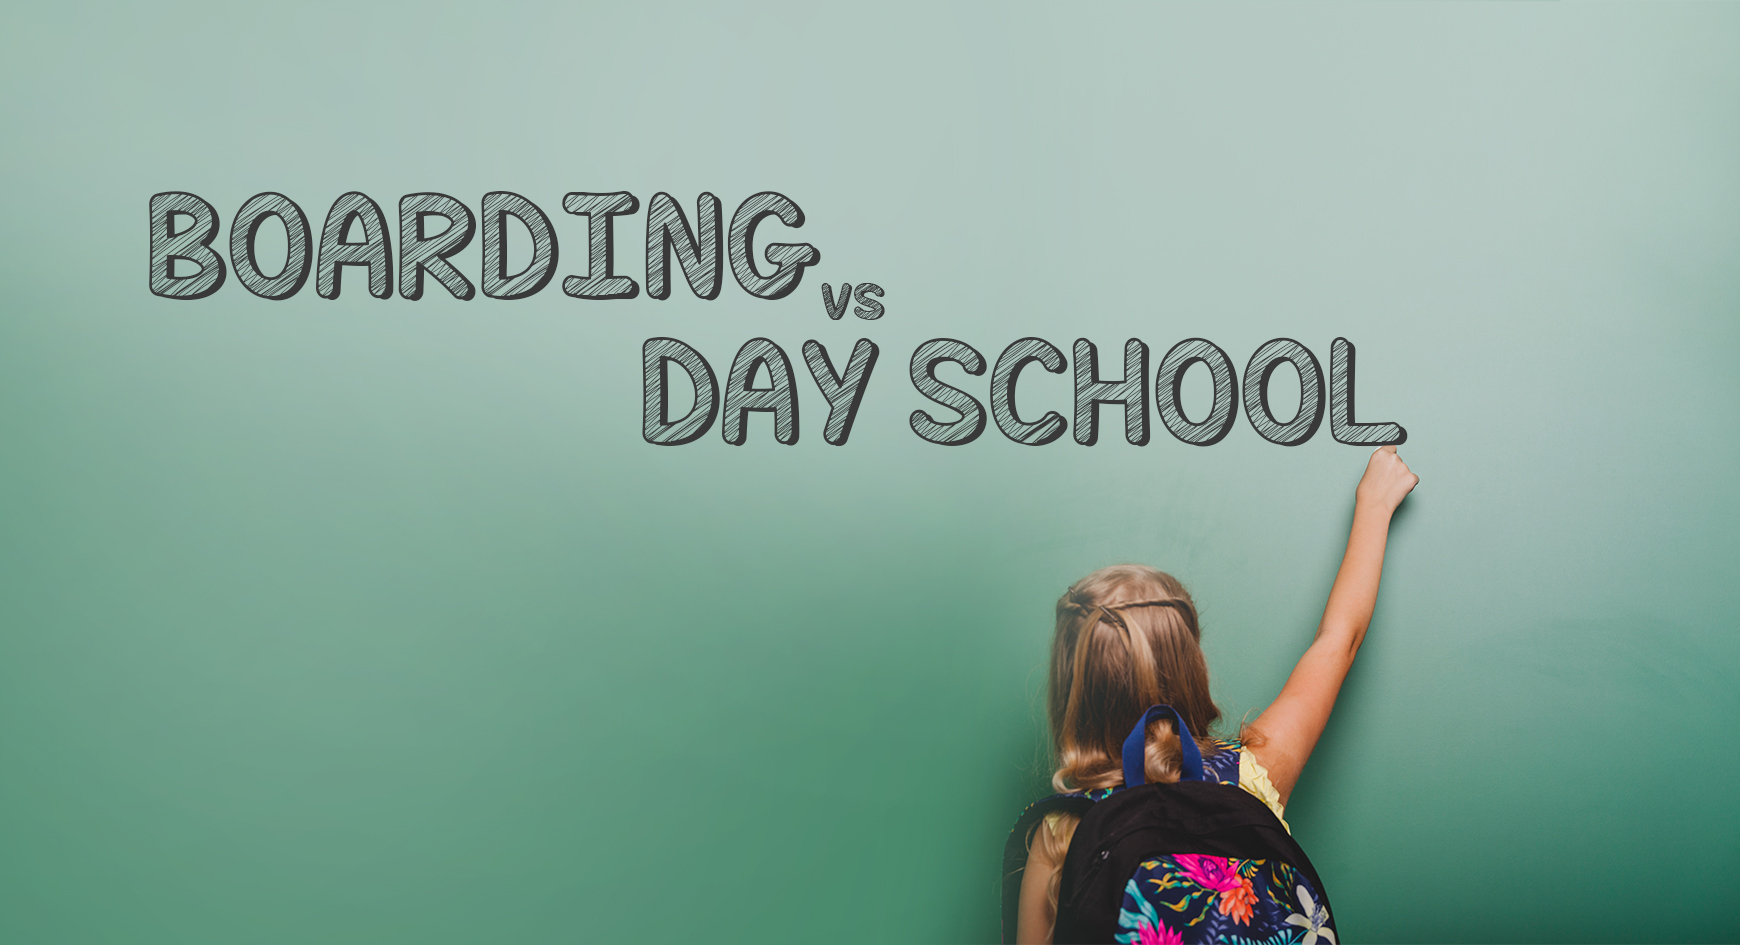 Which is better: Boarding School or Day School?